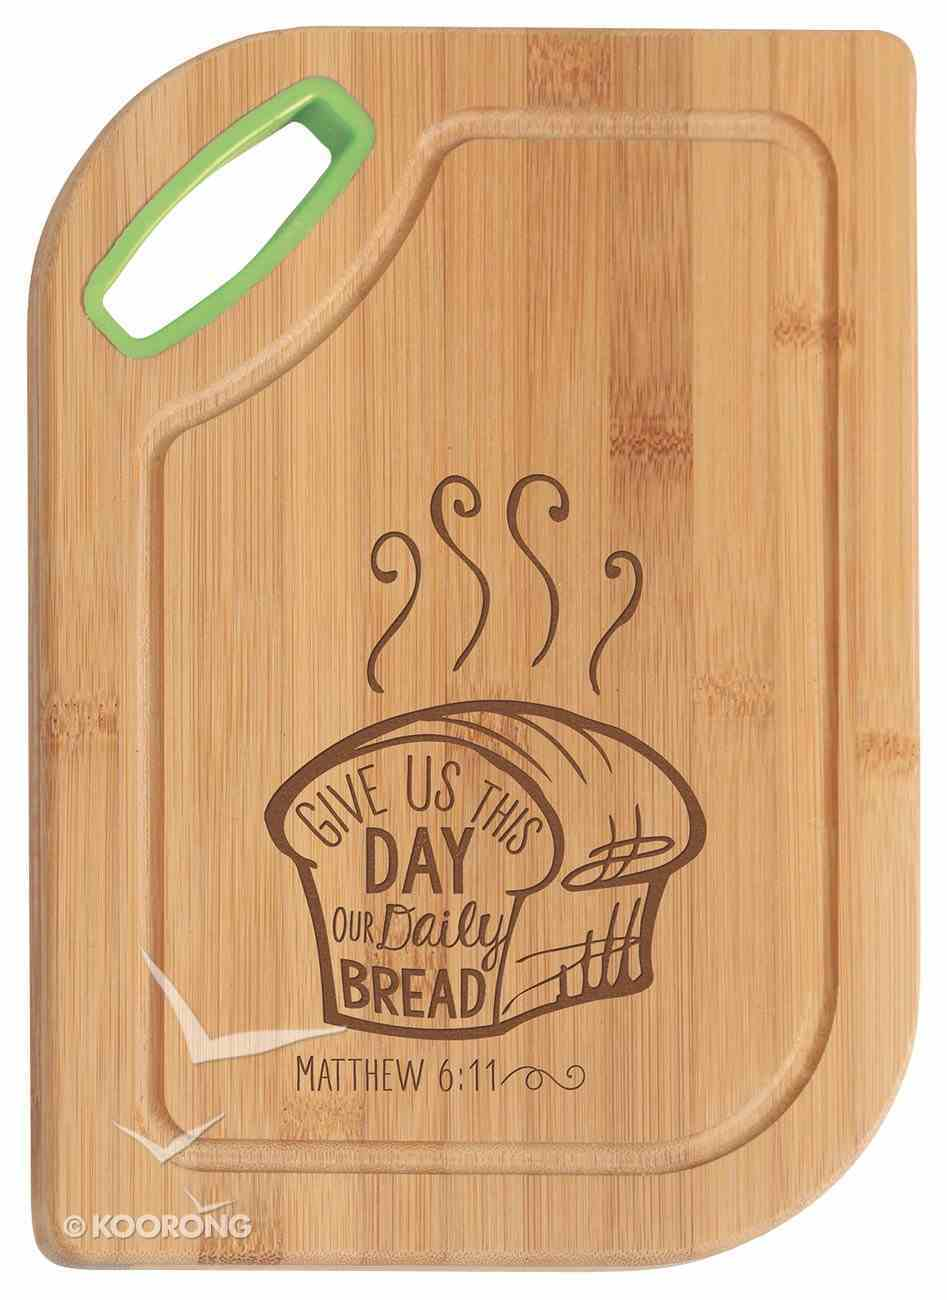 Hardwood Bamboo Cutting Board: Give Us This Day, Matthew 6:11 Homeware